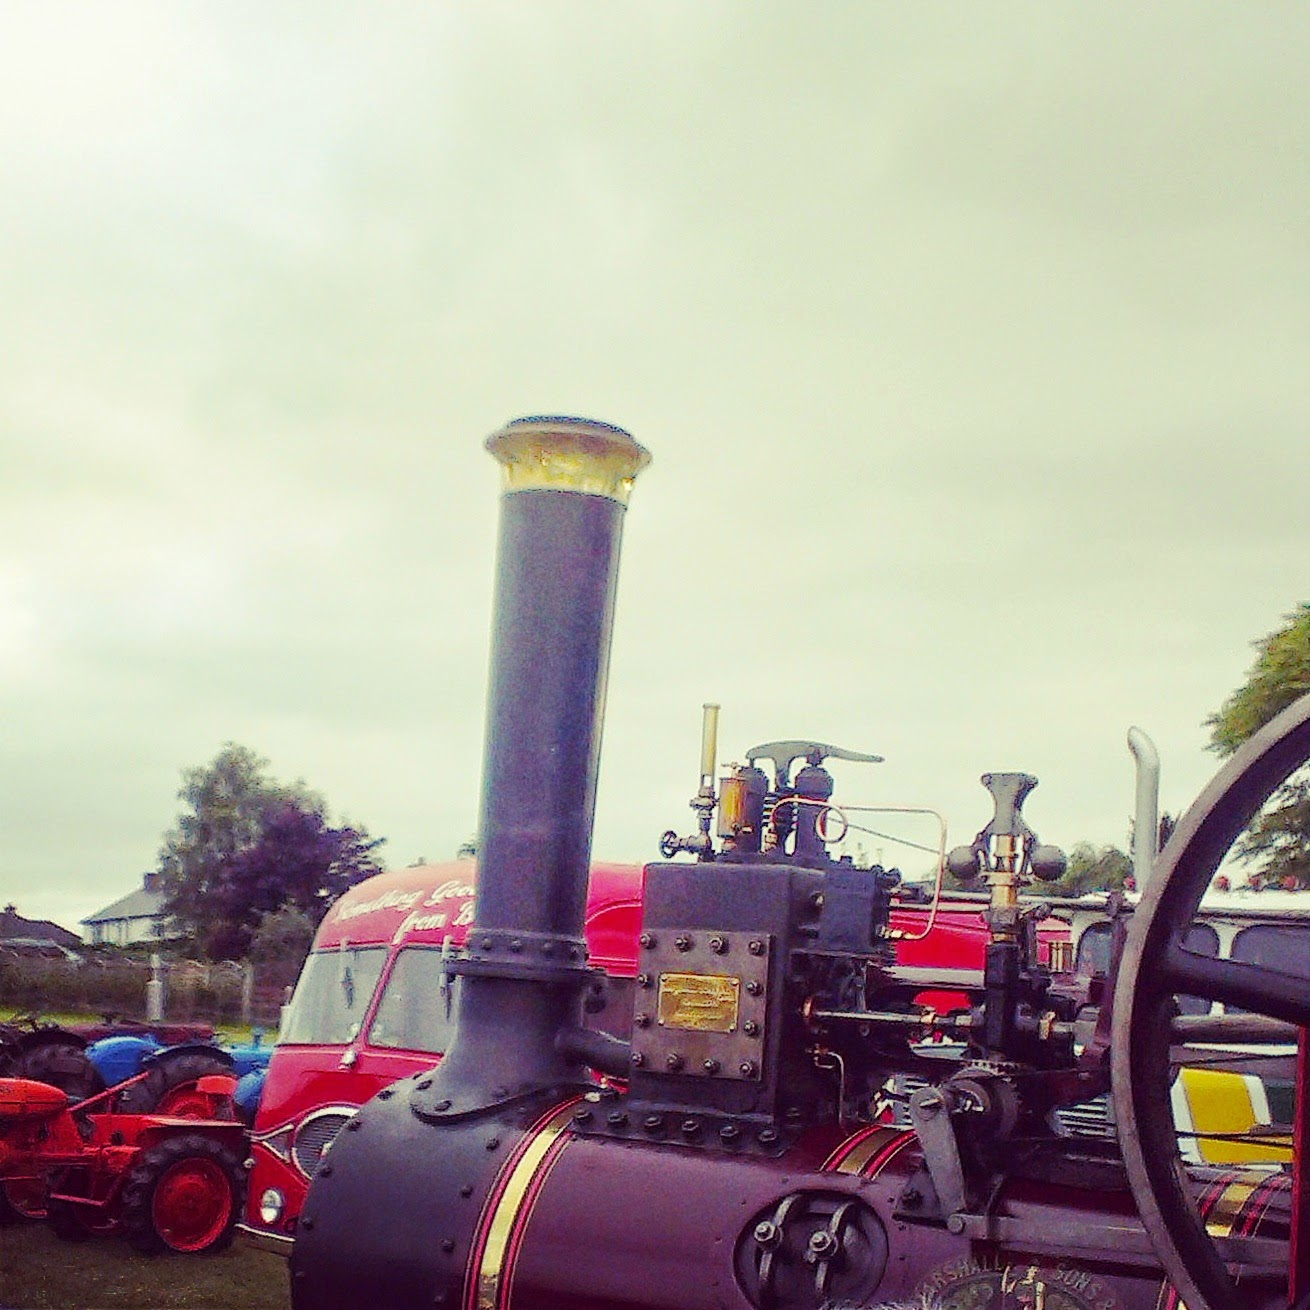 7pm - steam engine bbq